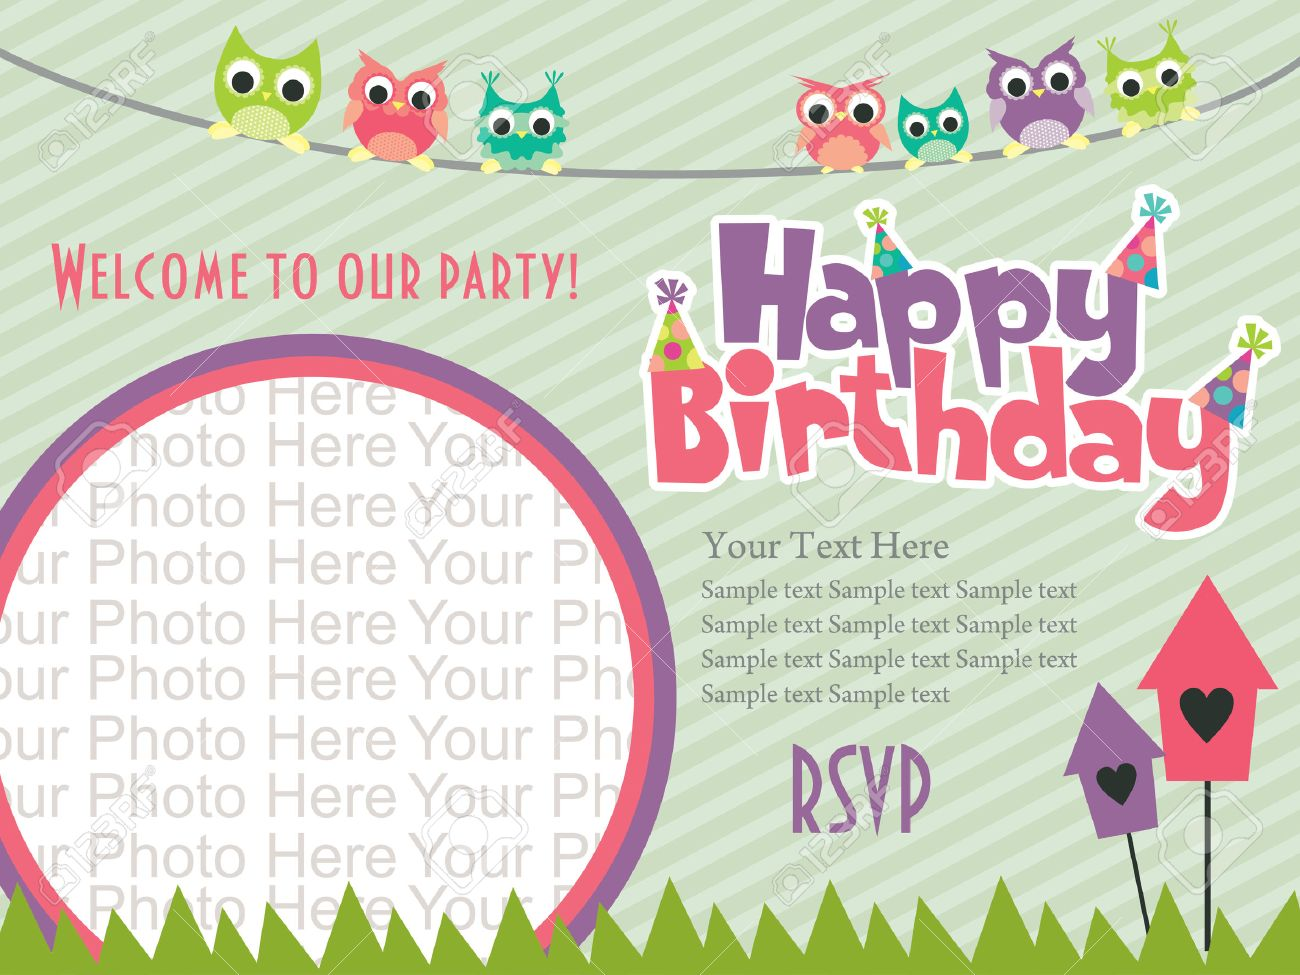 Design a birthday invitation yeniscale design a birthday invitation stopboris Choice Image